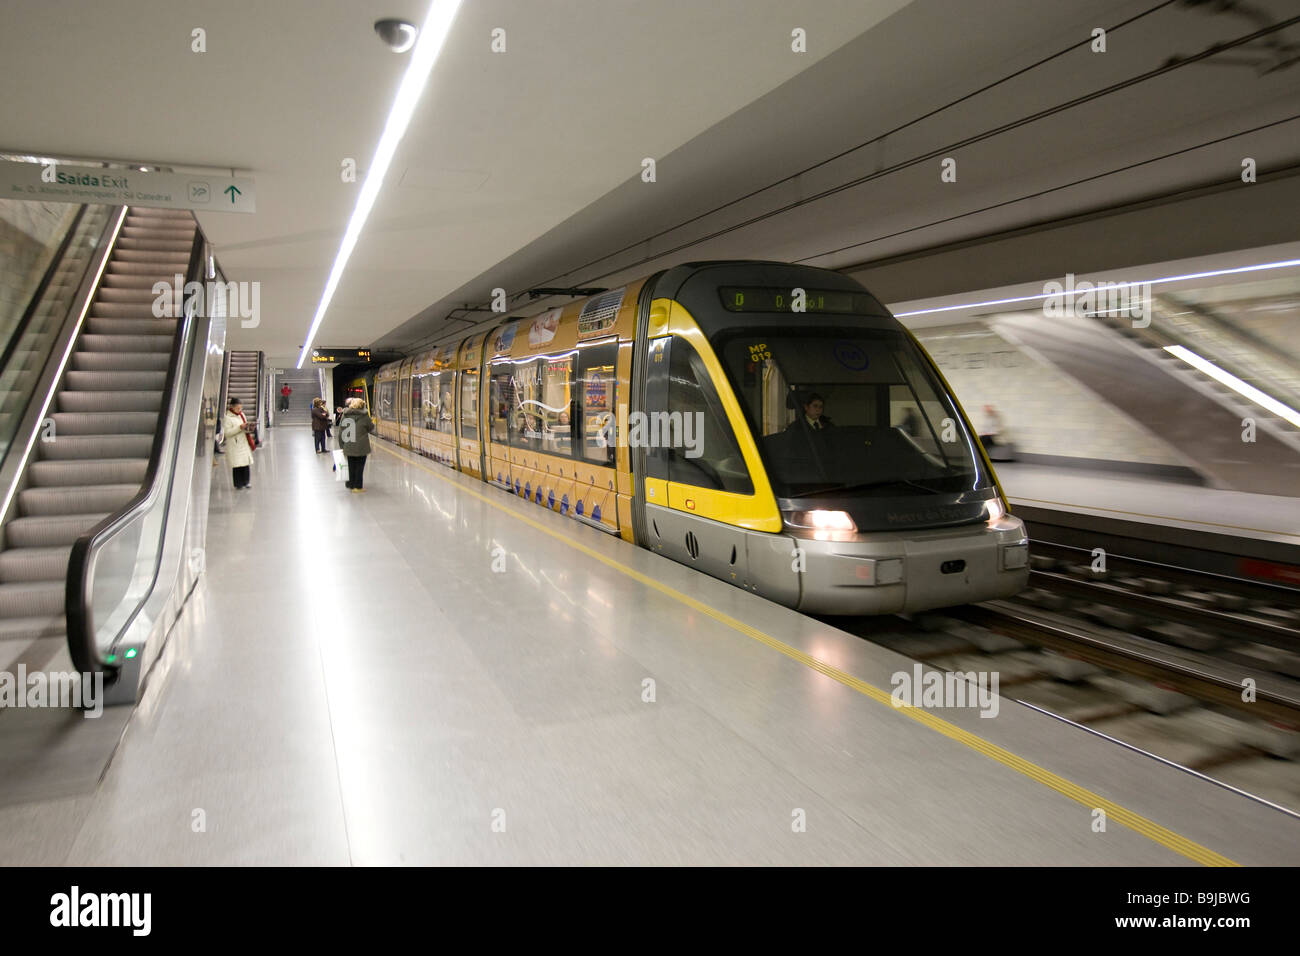 Metro train approaching a station porto portugal europe for Do metro trains have bathrooms